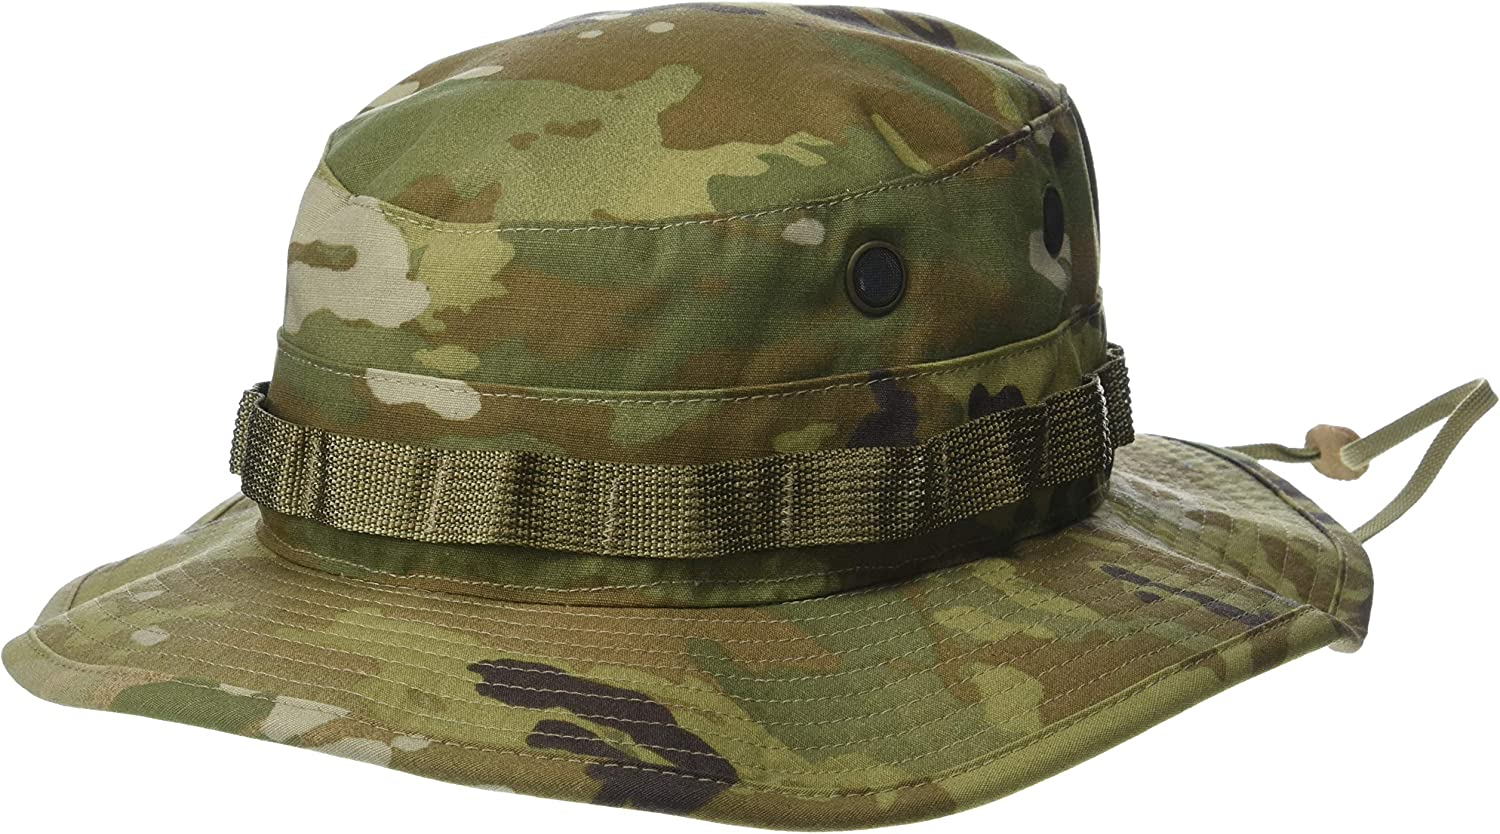 Propper Boonie Hat Max 82% OFF OFFicial